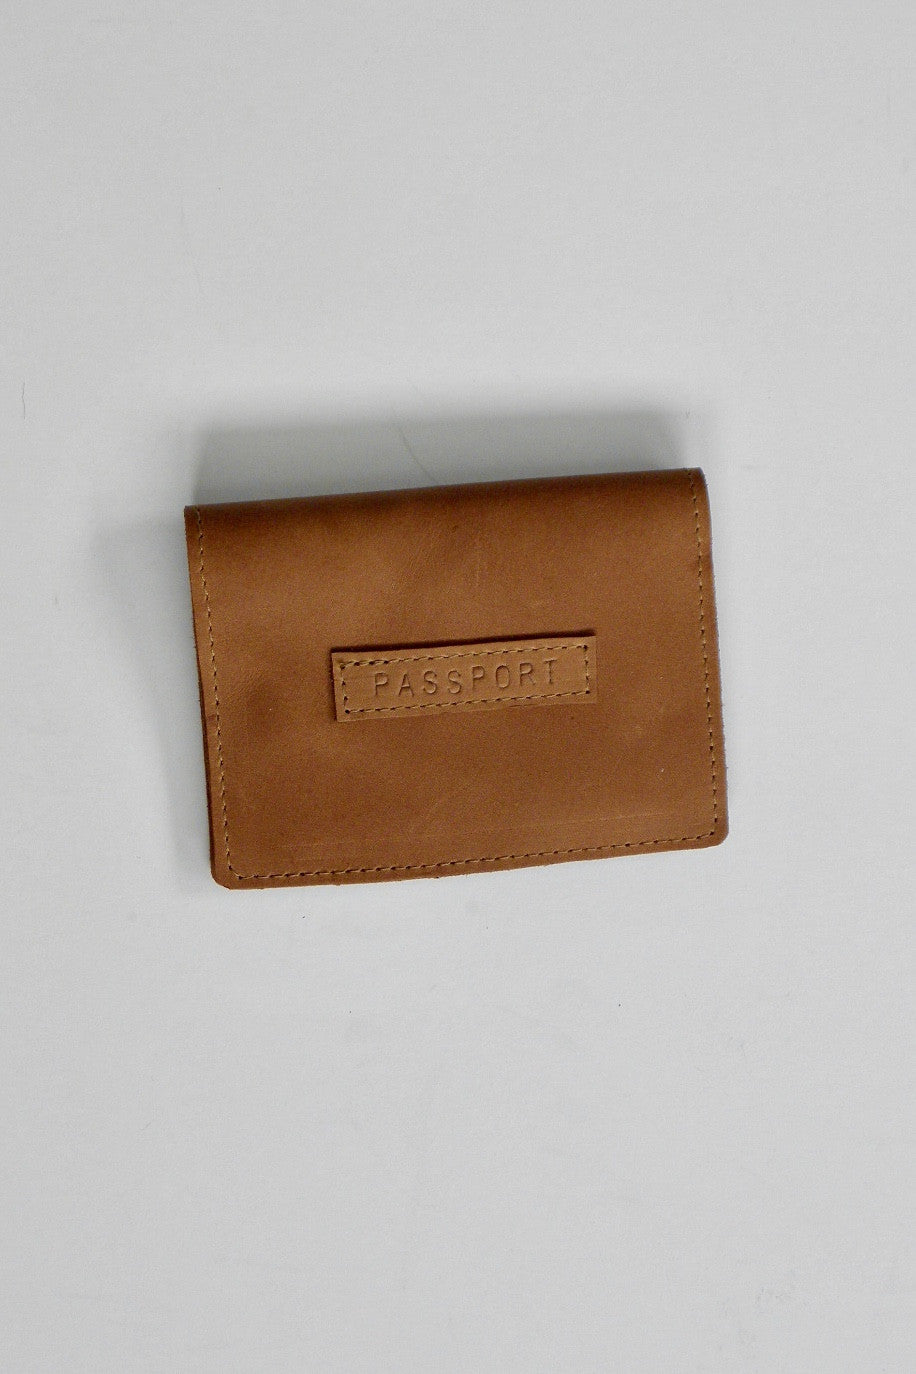 Passport Wallet / Tobacco